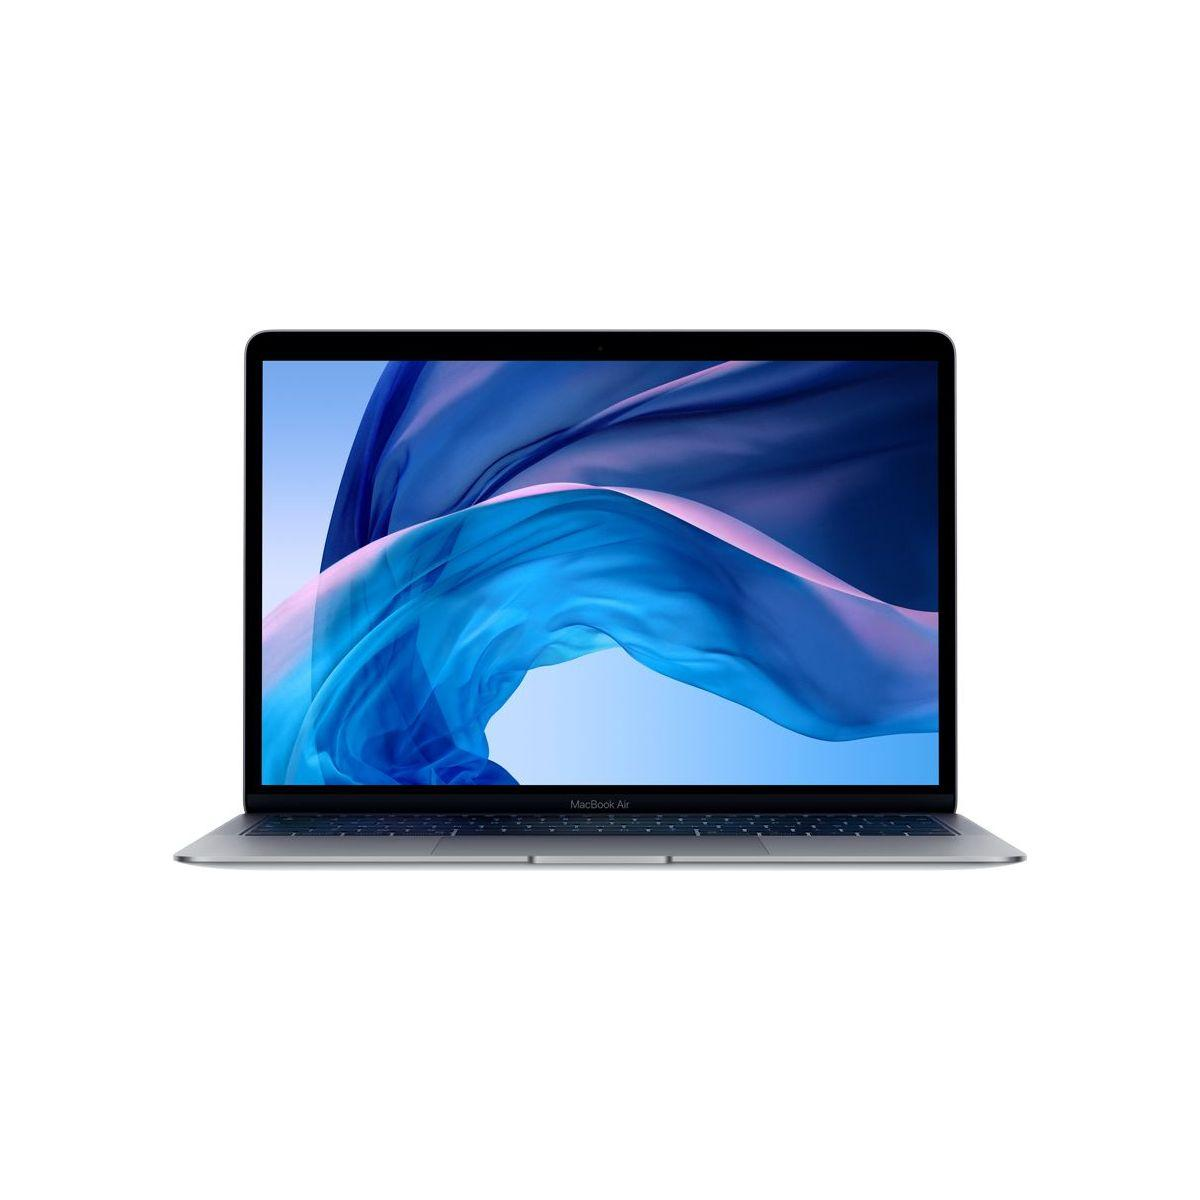 Portable macbook air new i5 128go gris sid�ral - livraison offerte : code liv